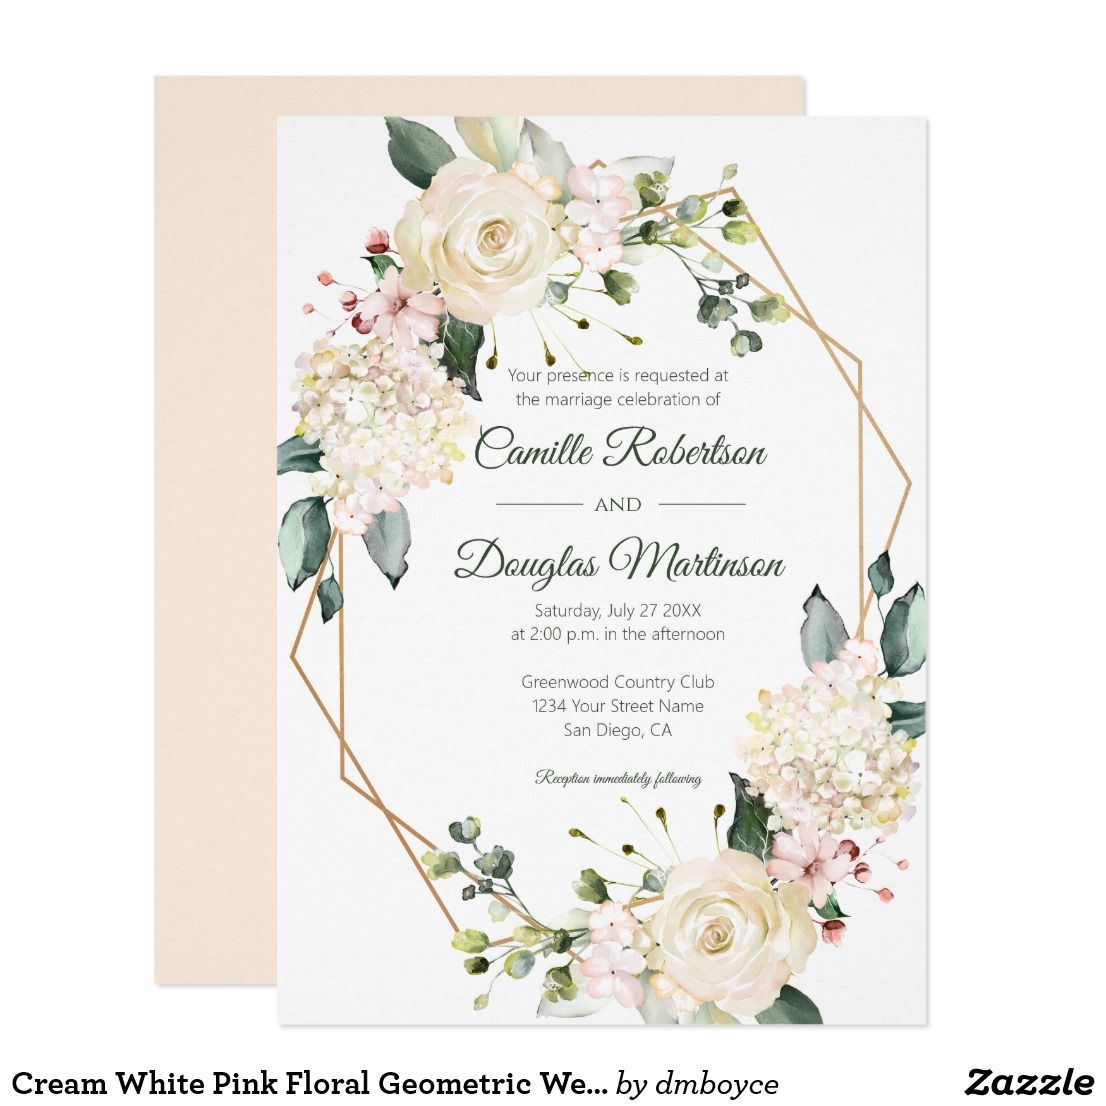 Cream White Pink Floral Geometric Wedding Invitation Zazzle Com